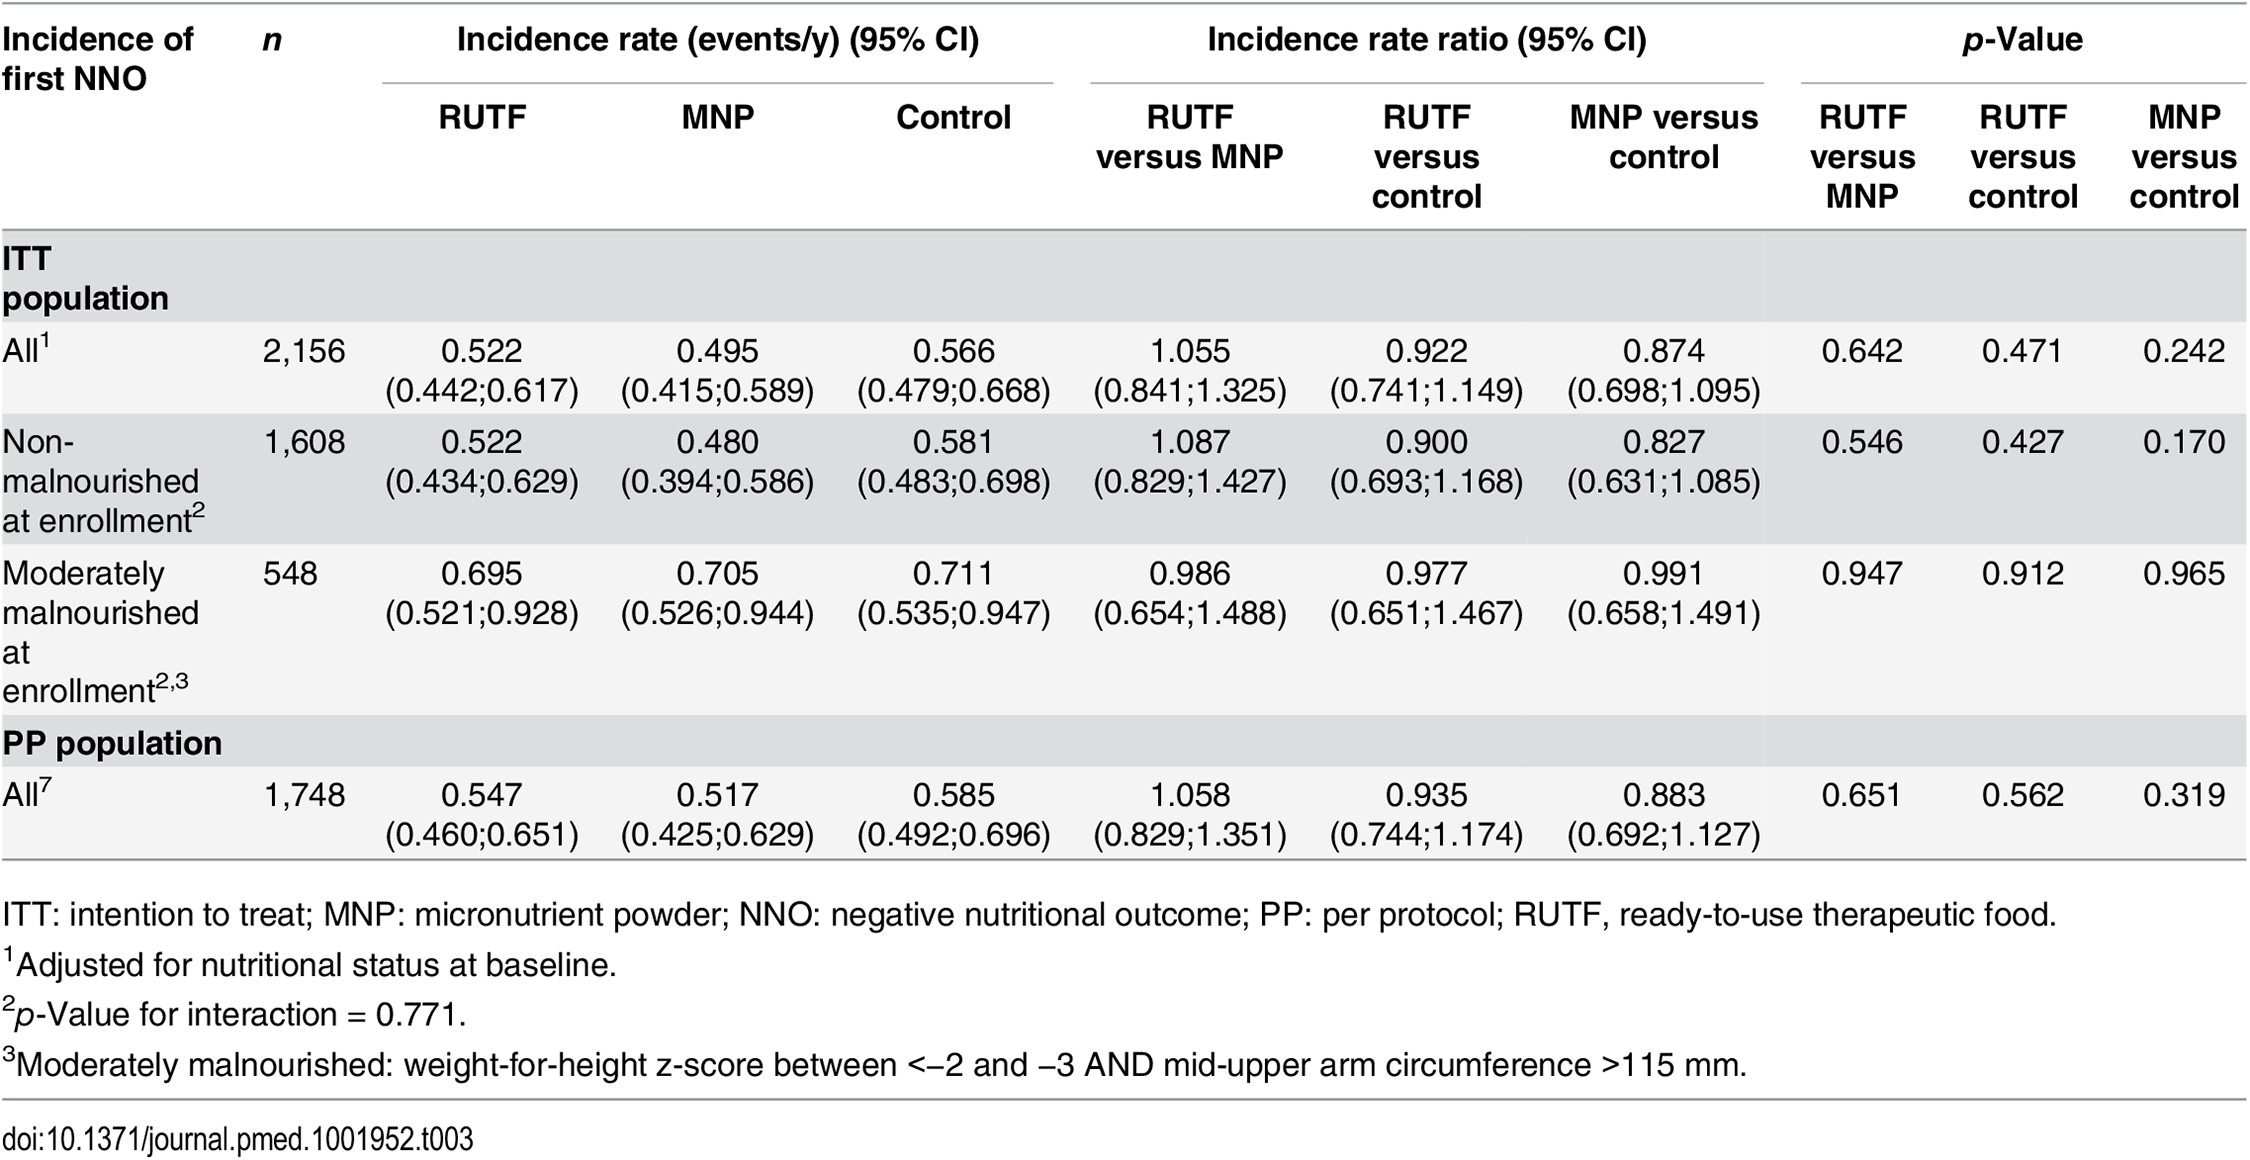 Incidence of first NNO (negative nutritional outcome) per y.